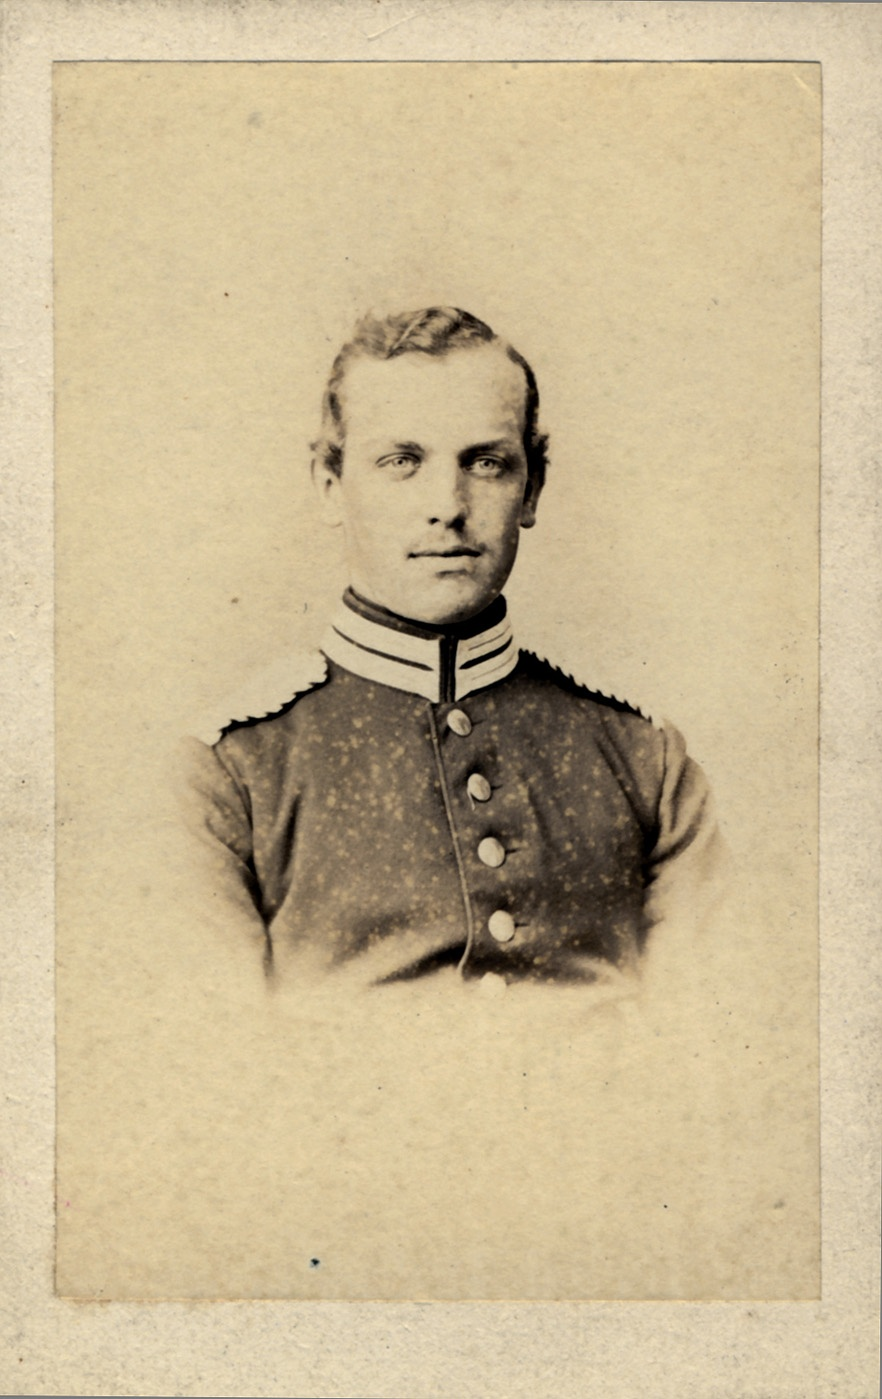 Porträtfoto Günther Ruhncke, 1862 (Museum Wolmirstedt RR-F)